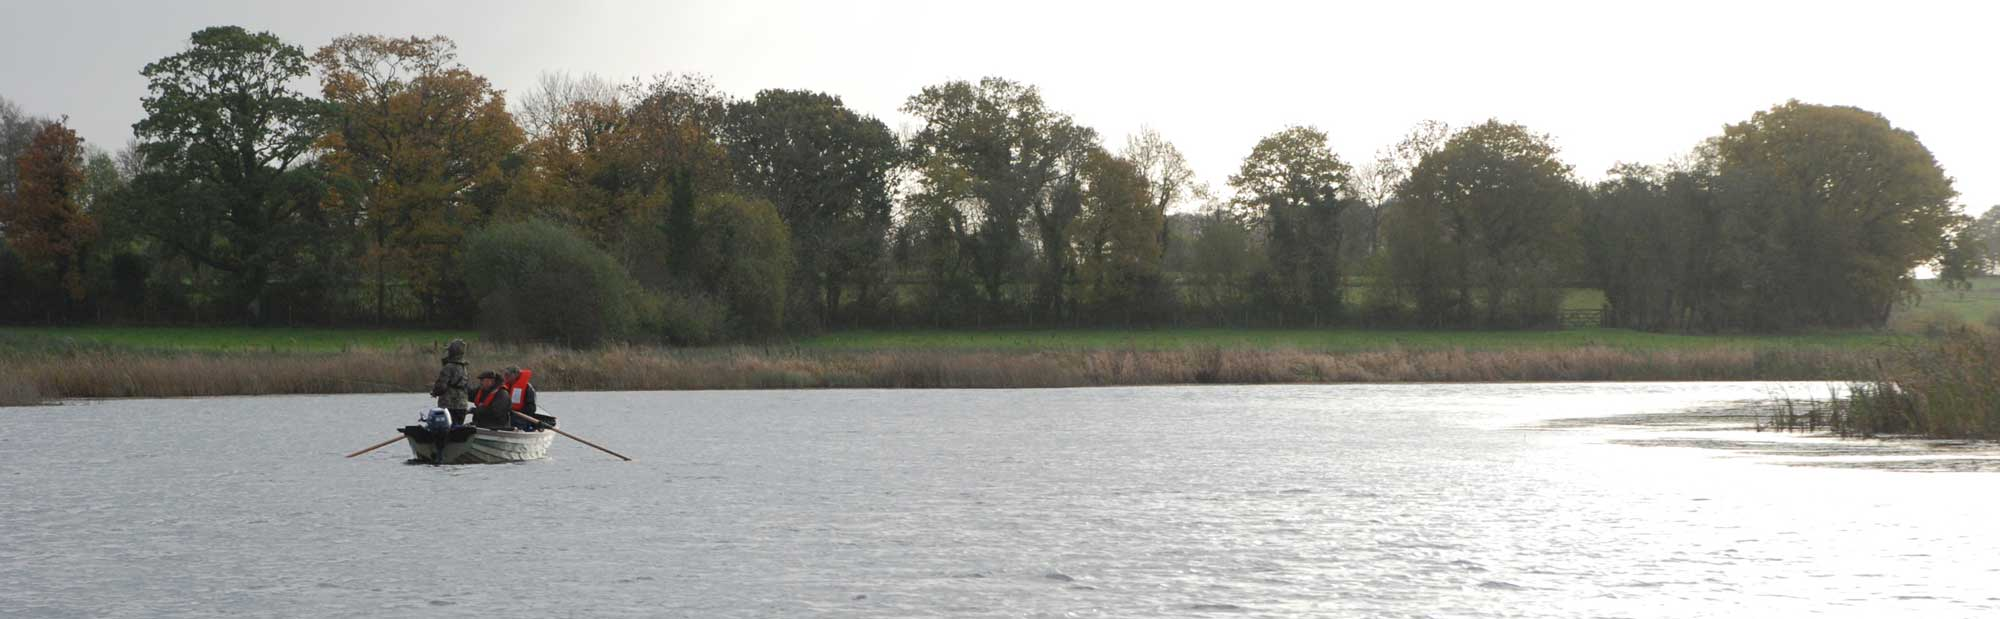 slider-fishing-guide-lough-erne-021